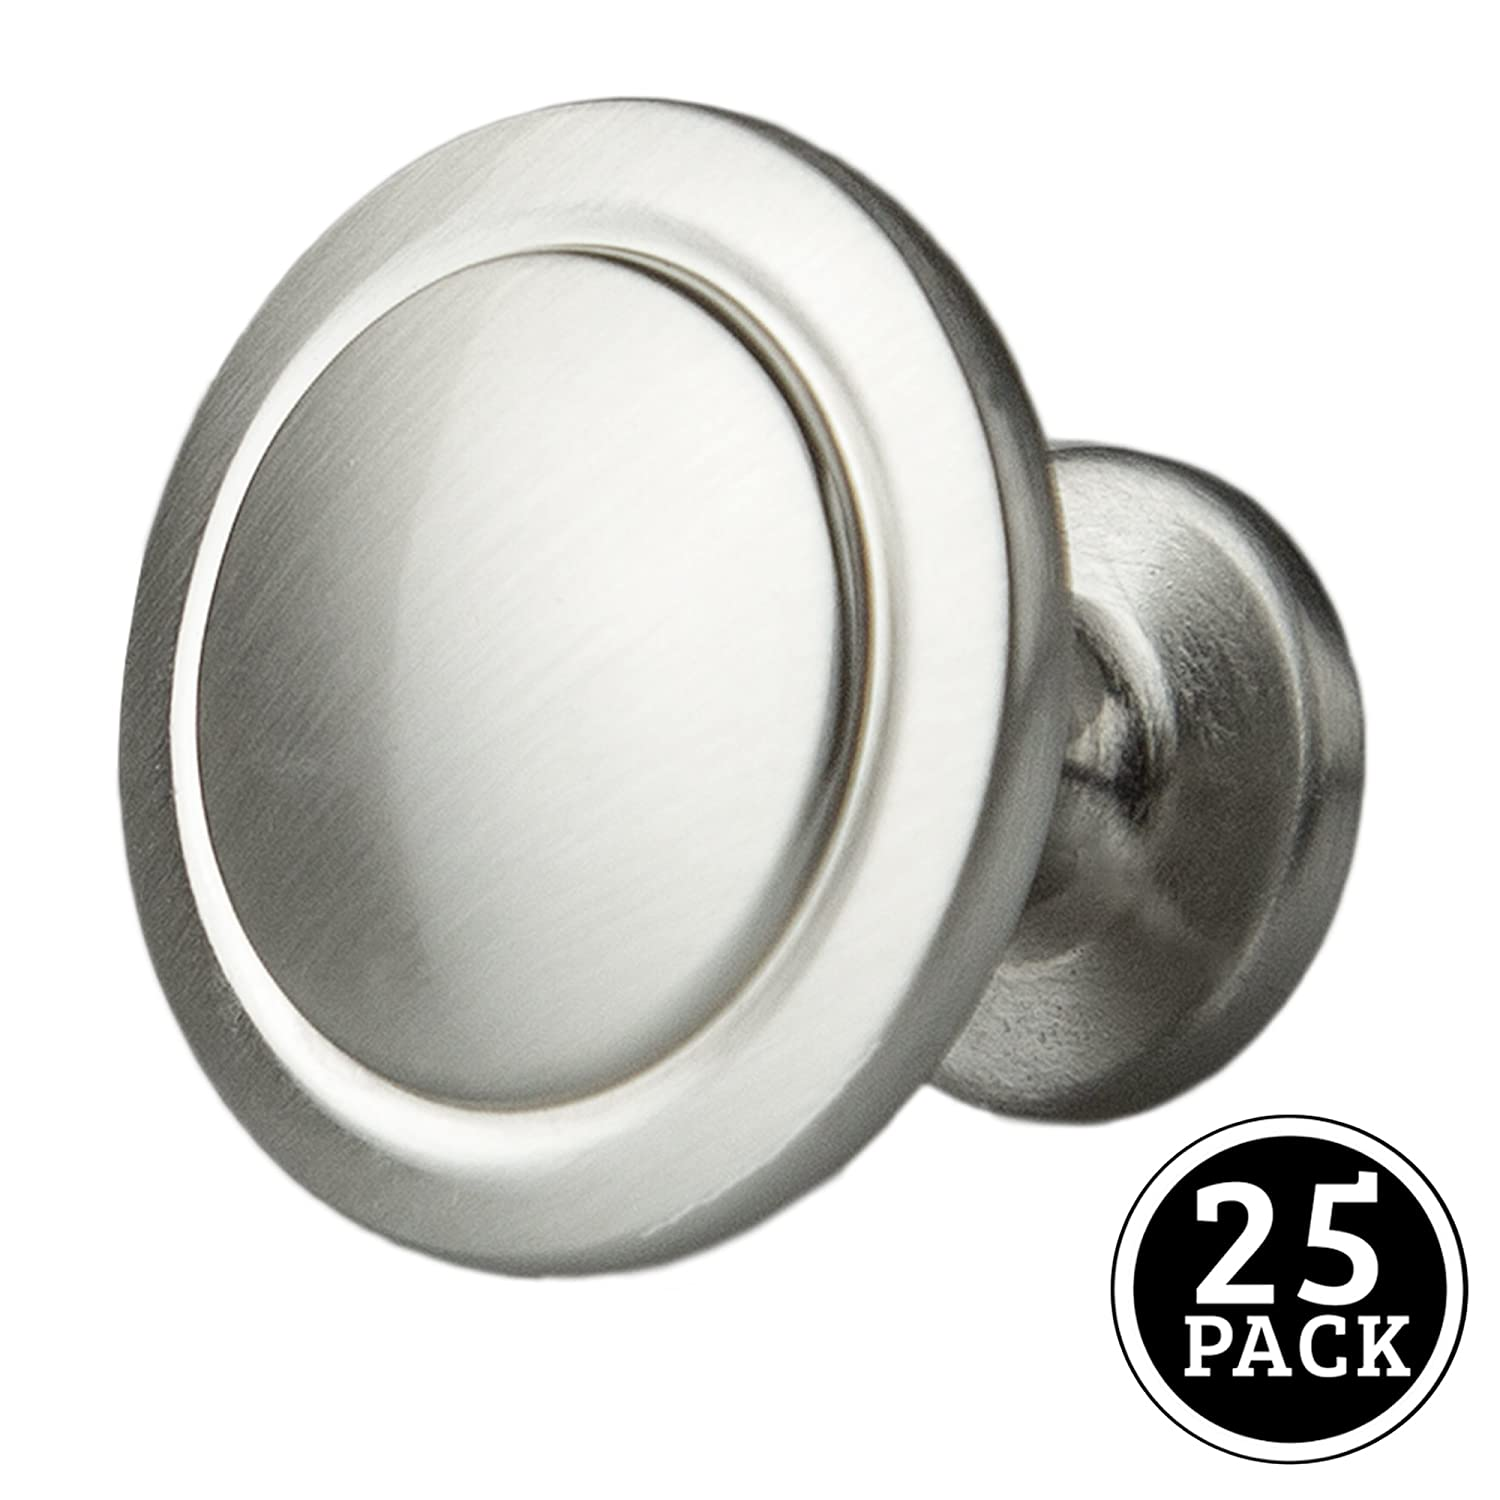 satin nickel kitchen cabinet knobs 1 14 inch round drawer handles 25